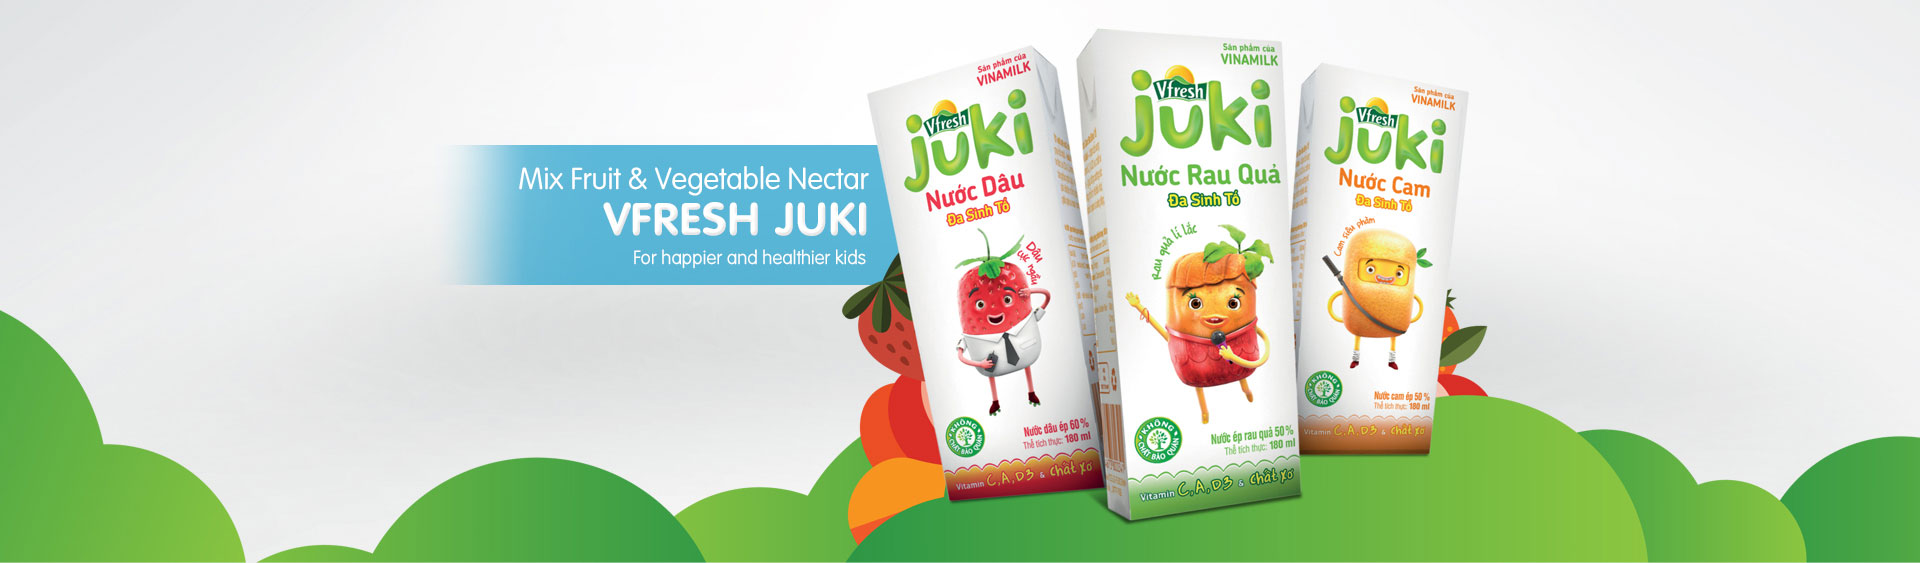 Vfresh Juki multi-vitamin juices